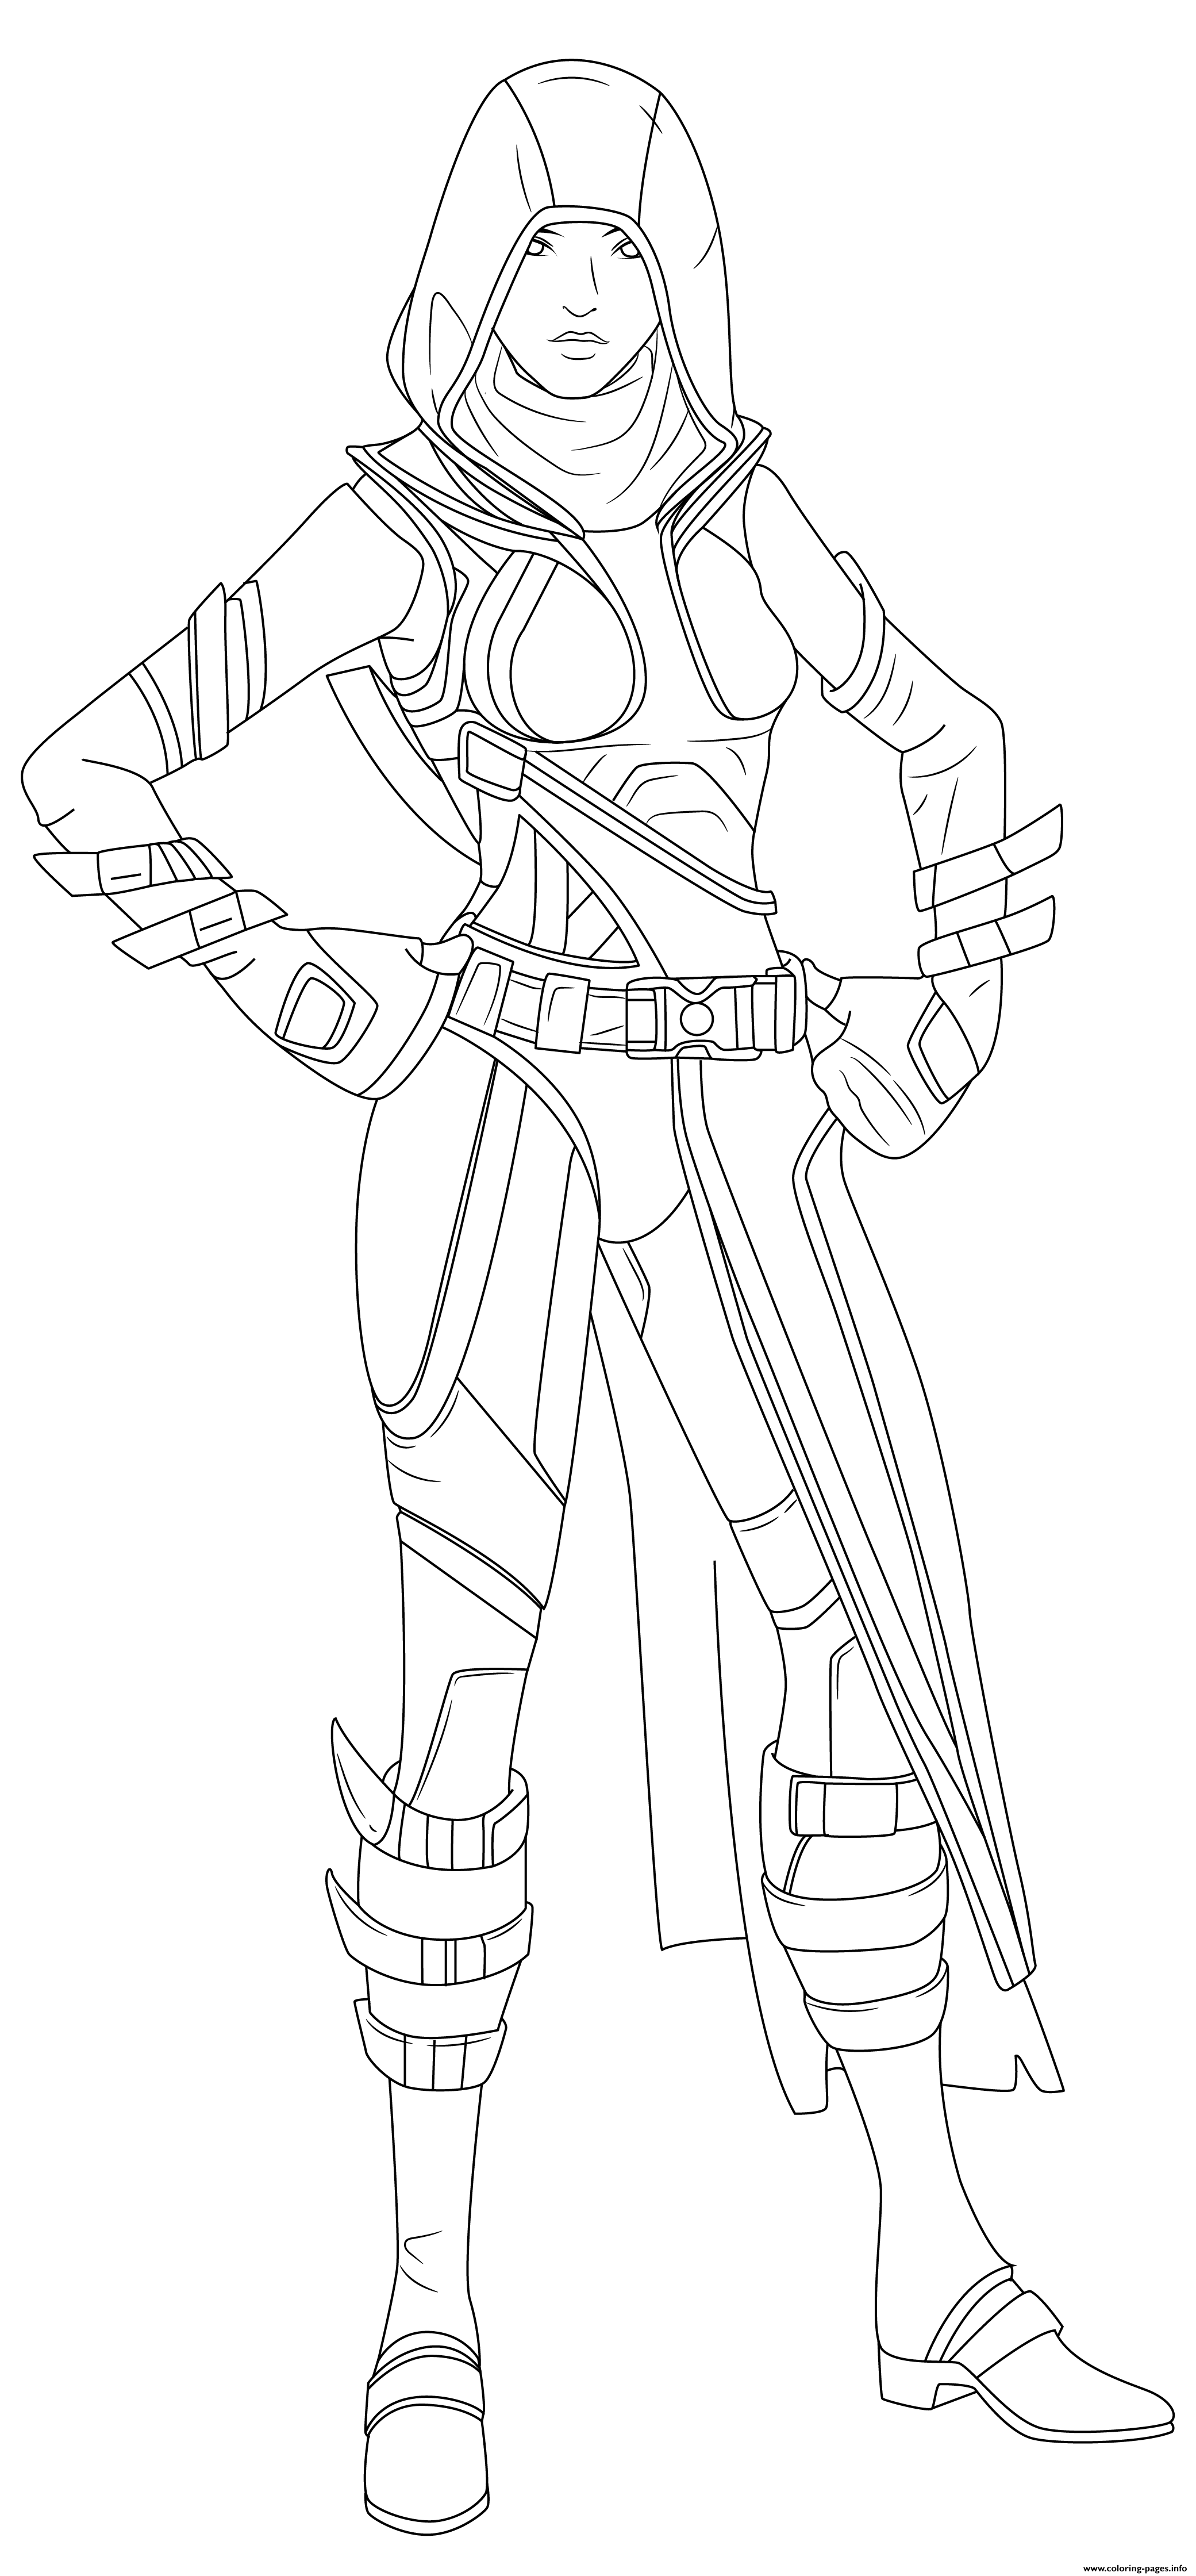 Fortnite Fate Skin Hd coloring pages